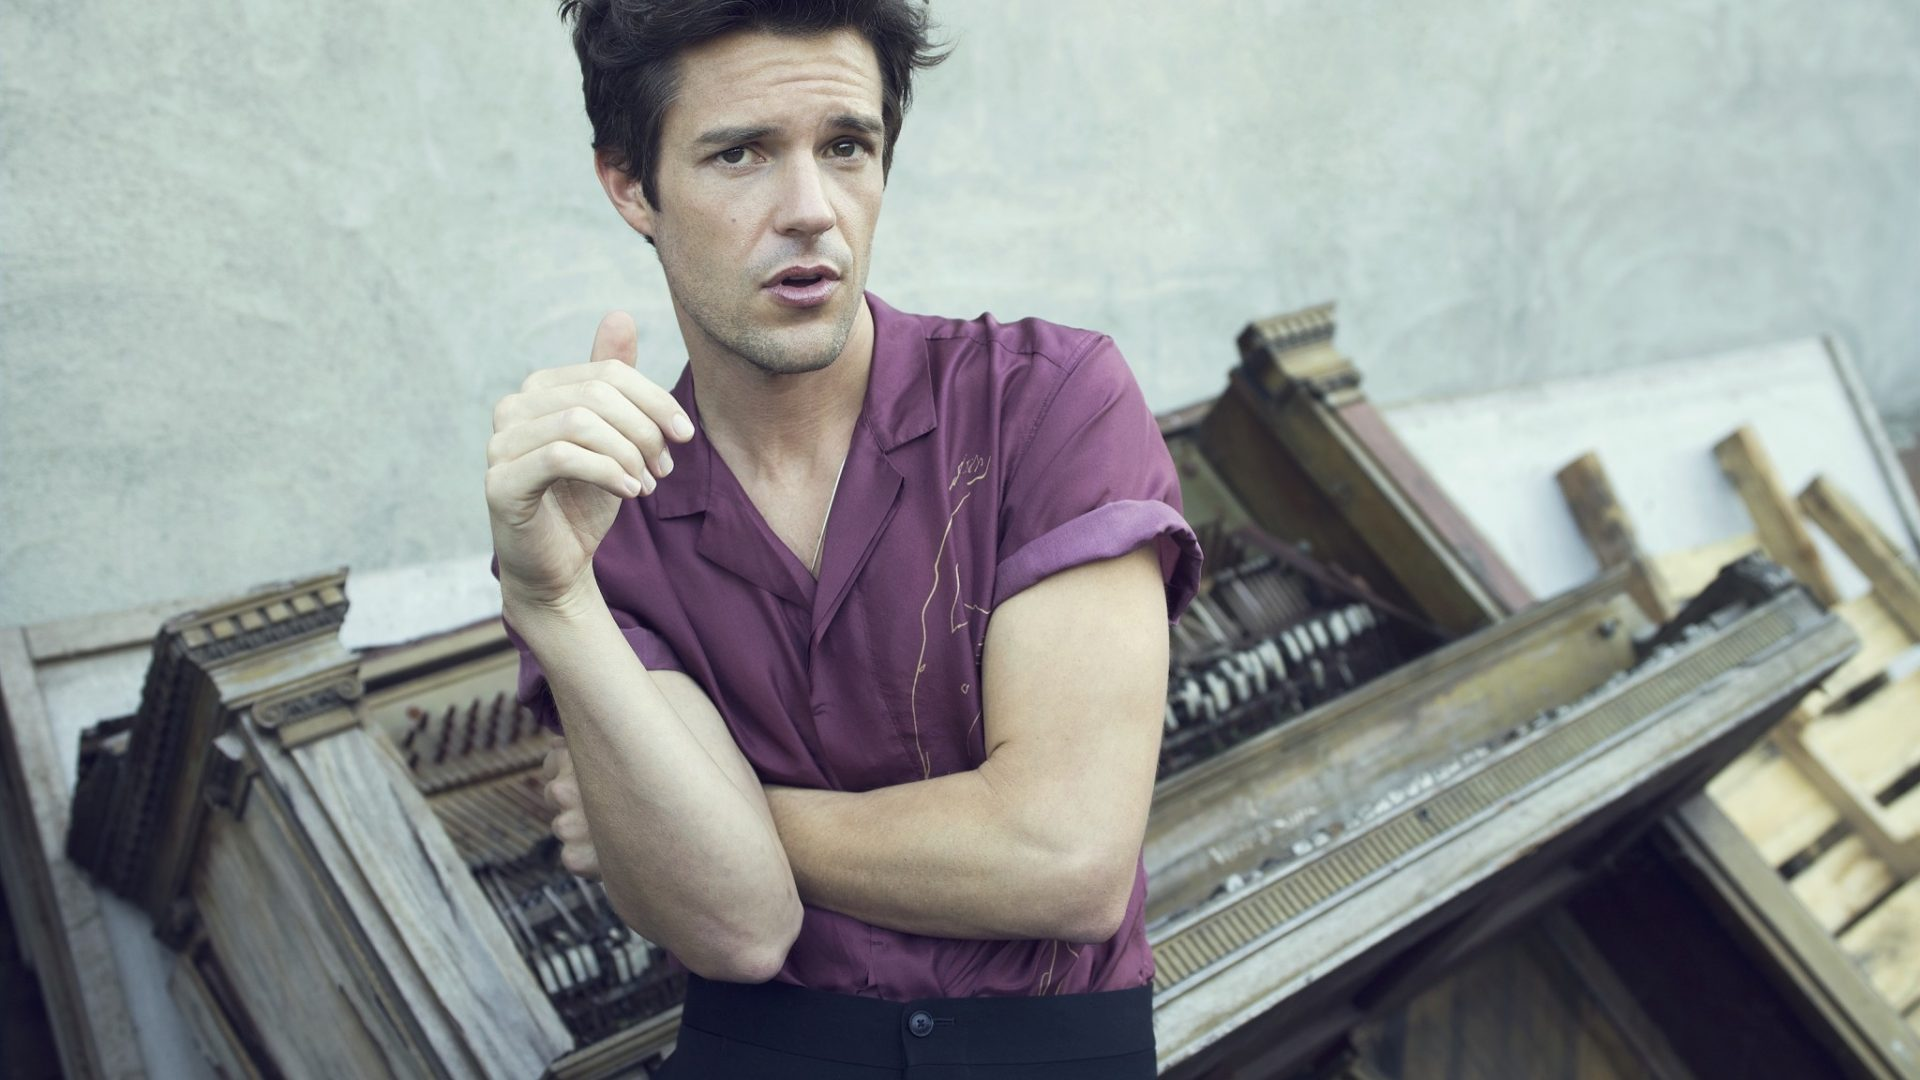 The Killers singer Brandon Flowers wants musicians to stand up to terror